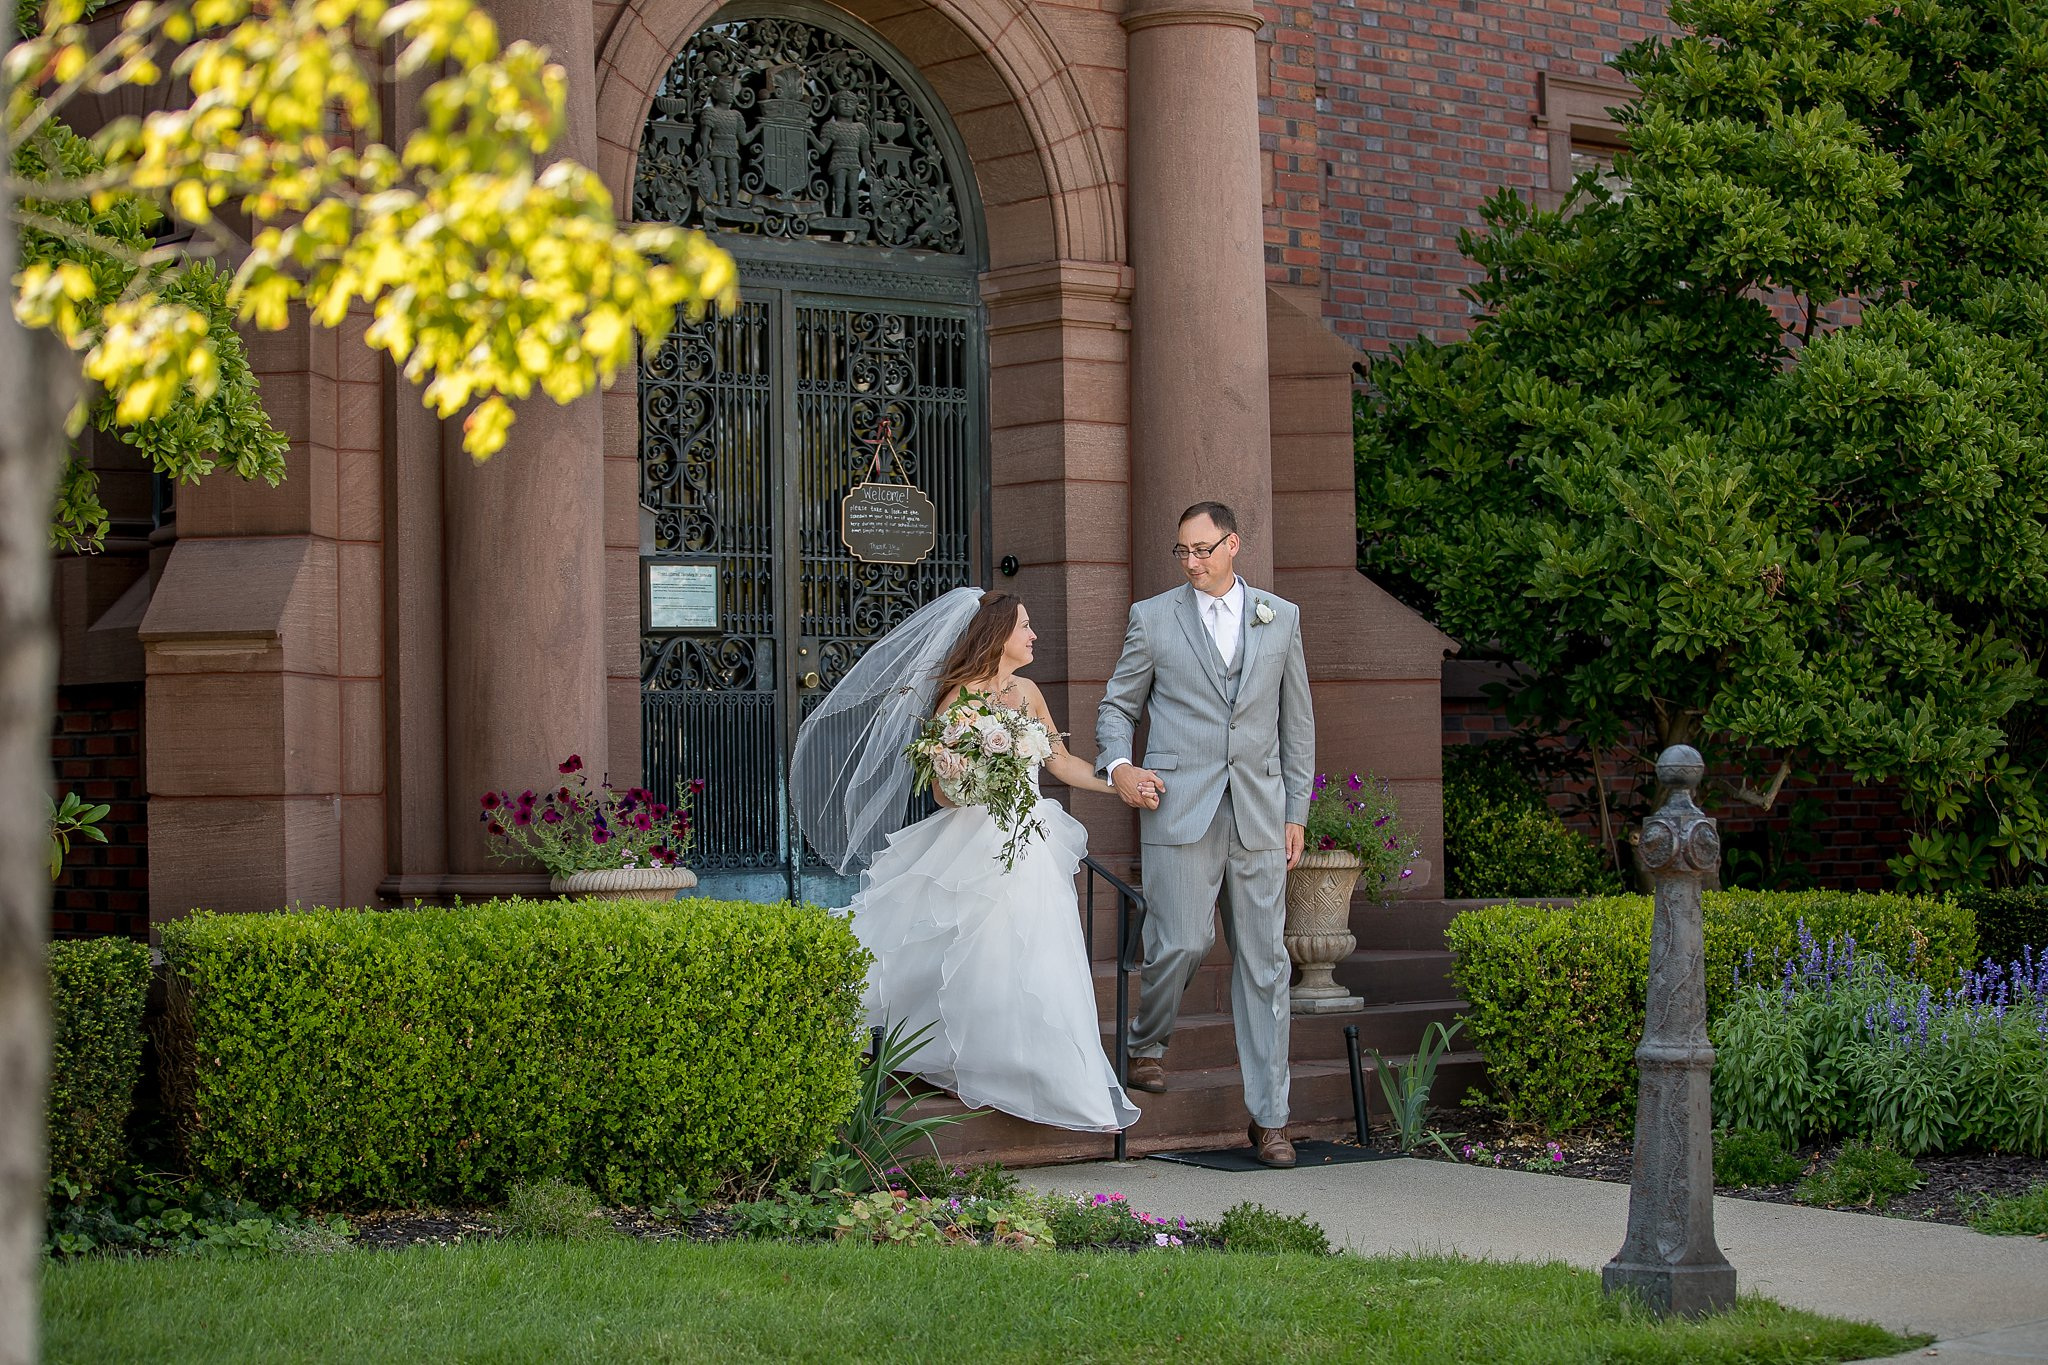 Deemer Wedding | Barker Mansion | Destination Wedding | Michigan City, IN